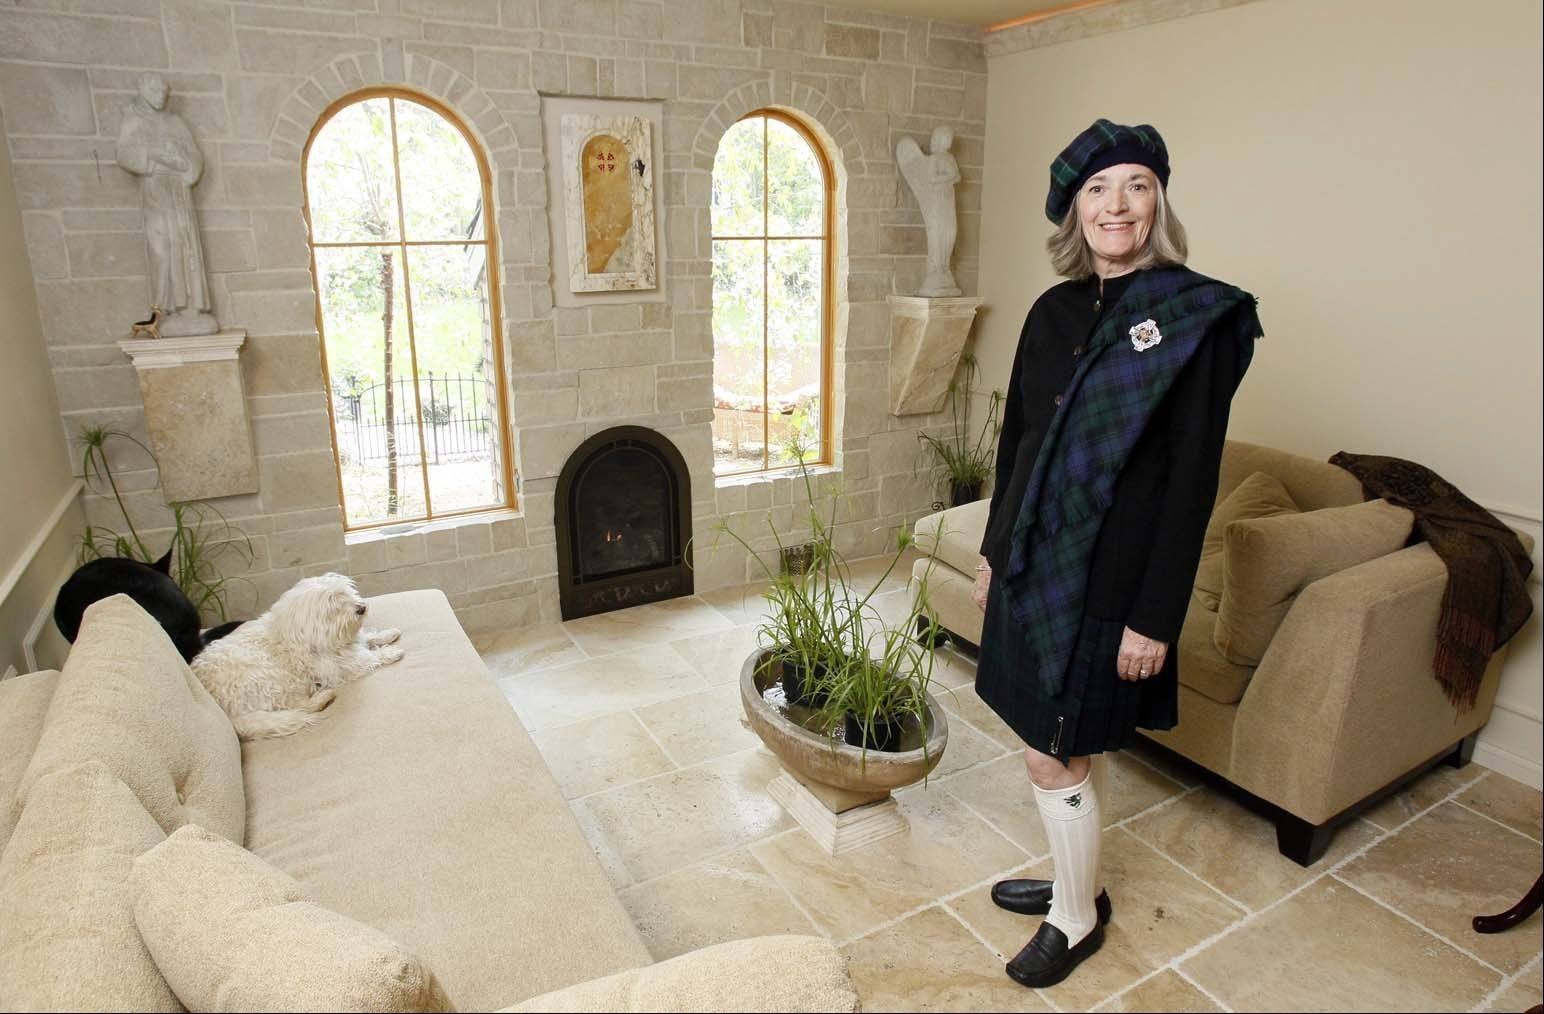 When she visited England, Pinky Edens fell in love with stone. She used the material to build a chapel in a former bedroom of her home.